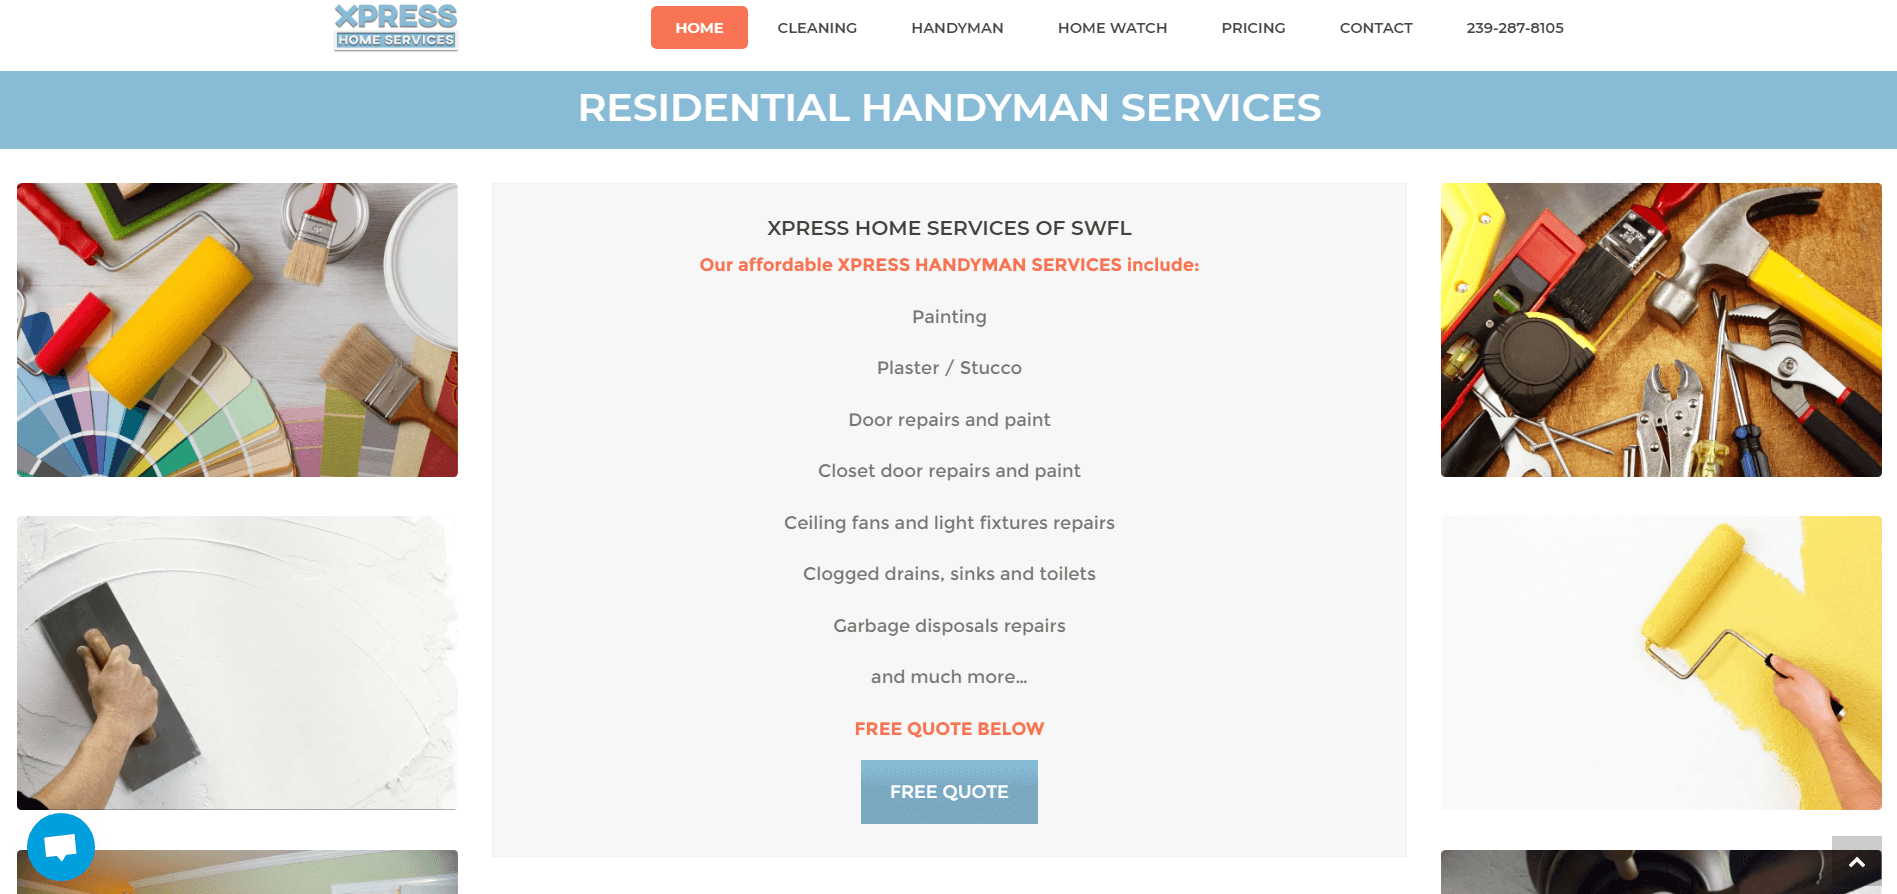 xpress home services handyman page